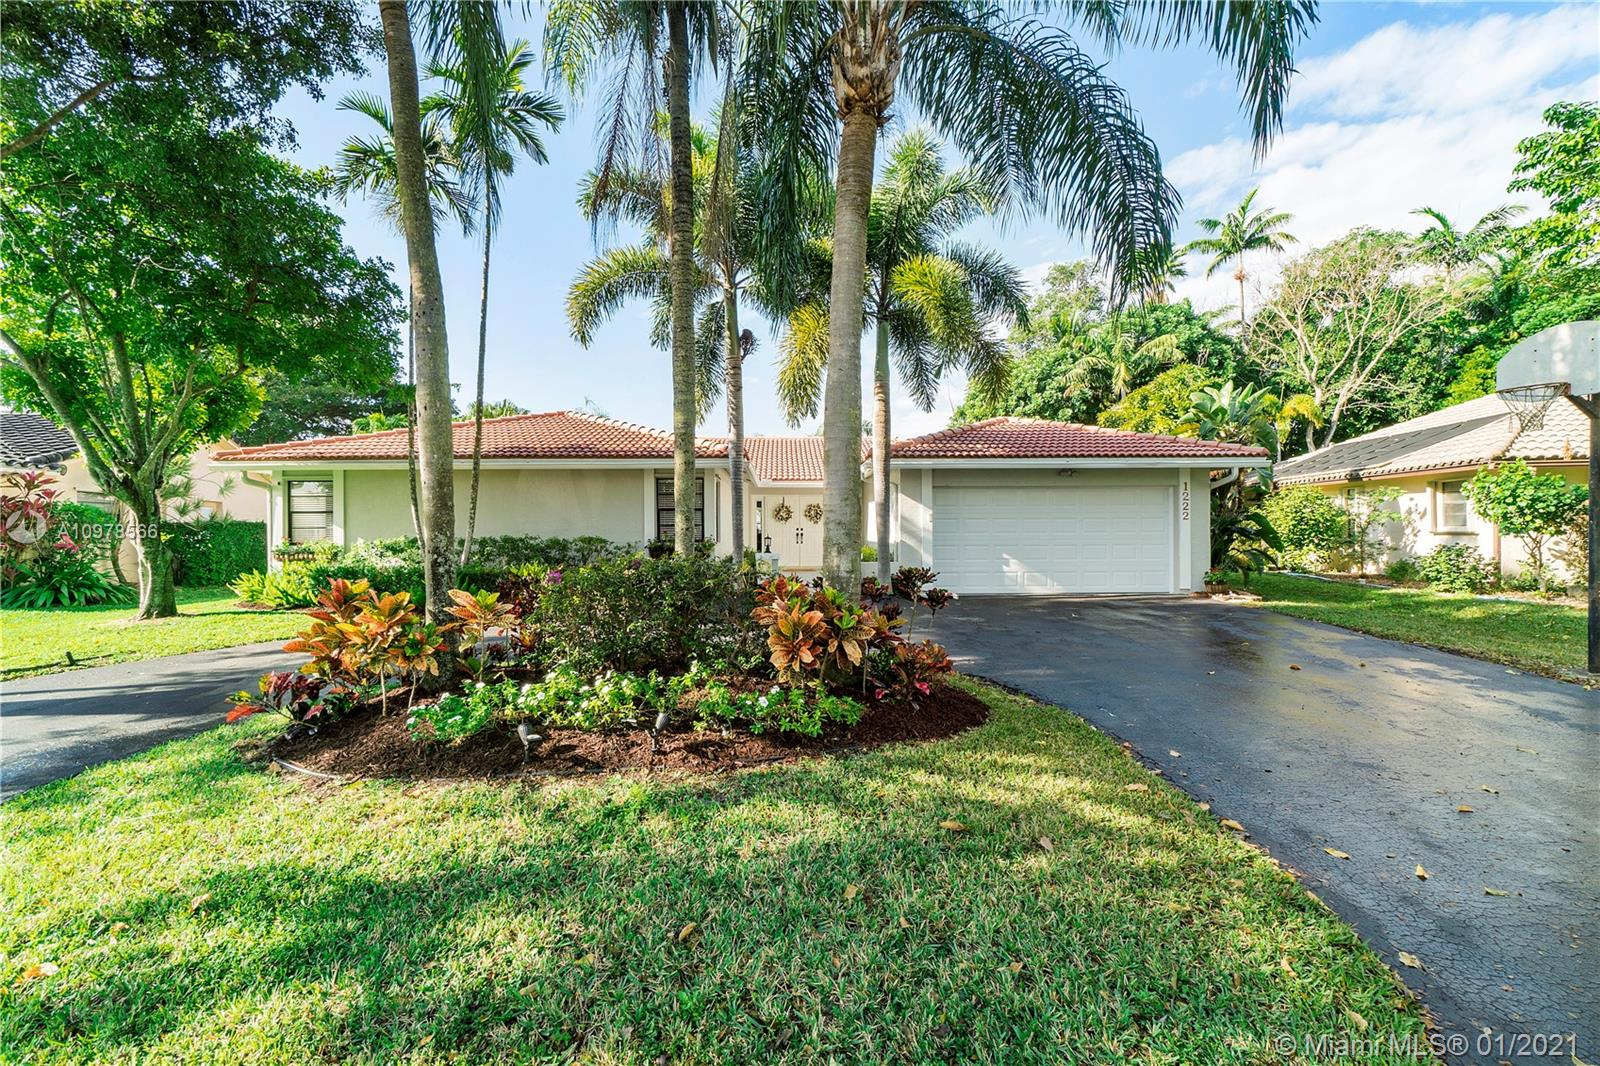 Come and see this beautifully updated 4/2 waterfront pool home with wide serene lake and canal view in desirable Cypress Run! You will love this homes wonderful curb appeal and tree-lined neighborhood with no HOA! Features include: Roof replaced in 2005, new air conditioner 2018, new hot water heater 2016, new sprinkler pump 2017, new stainless steel refrigerator 2020, dishwasher 2019, microwave 2019 with custom white cabinets and Corian counter-tops, knockdown ceiling and recessed lighting, updated laminate wood flooring and baseboards in main living areas, half bead-board wall in family room and dining room, fenced yard, child-safe fence around pool, new hurricane rated garage door 2020, custom organizer's in all bedroom closets, ring 